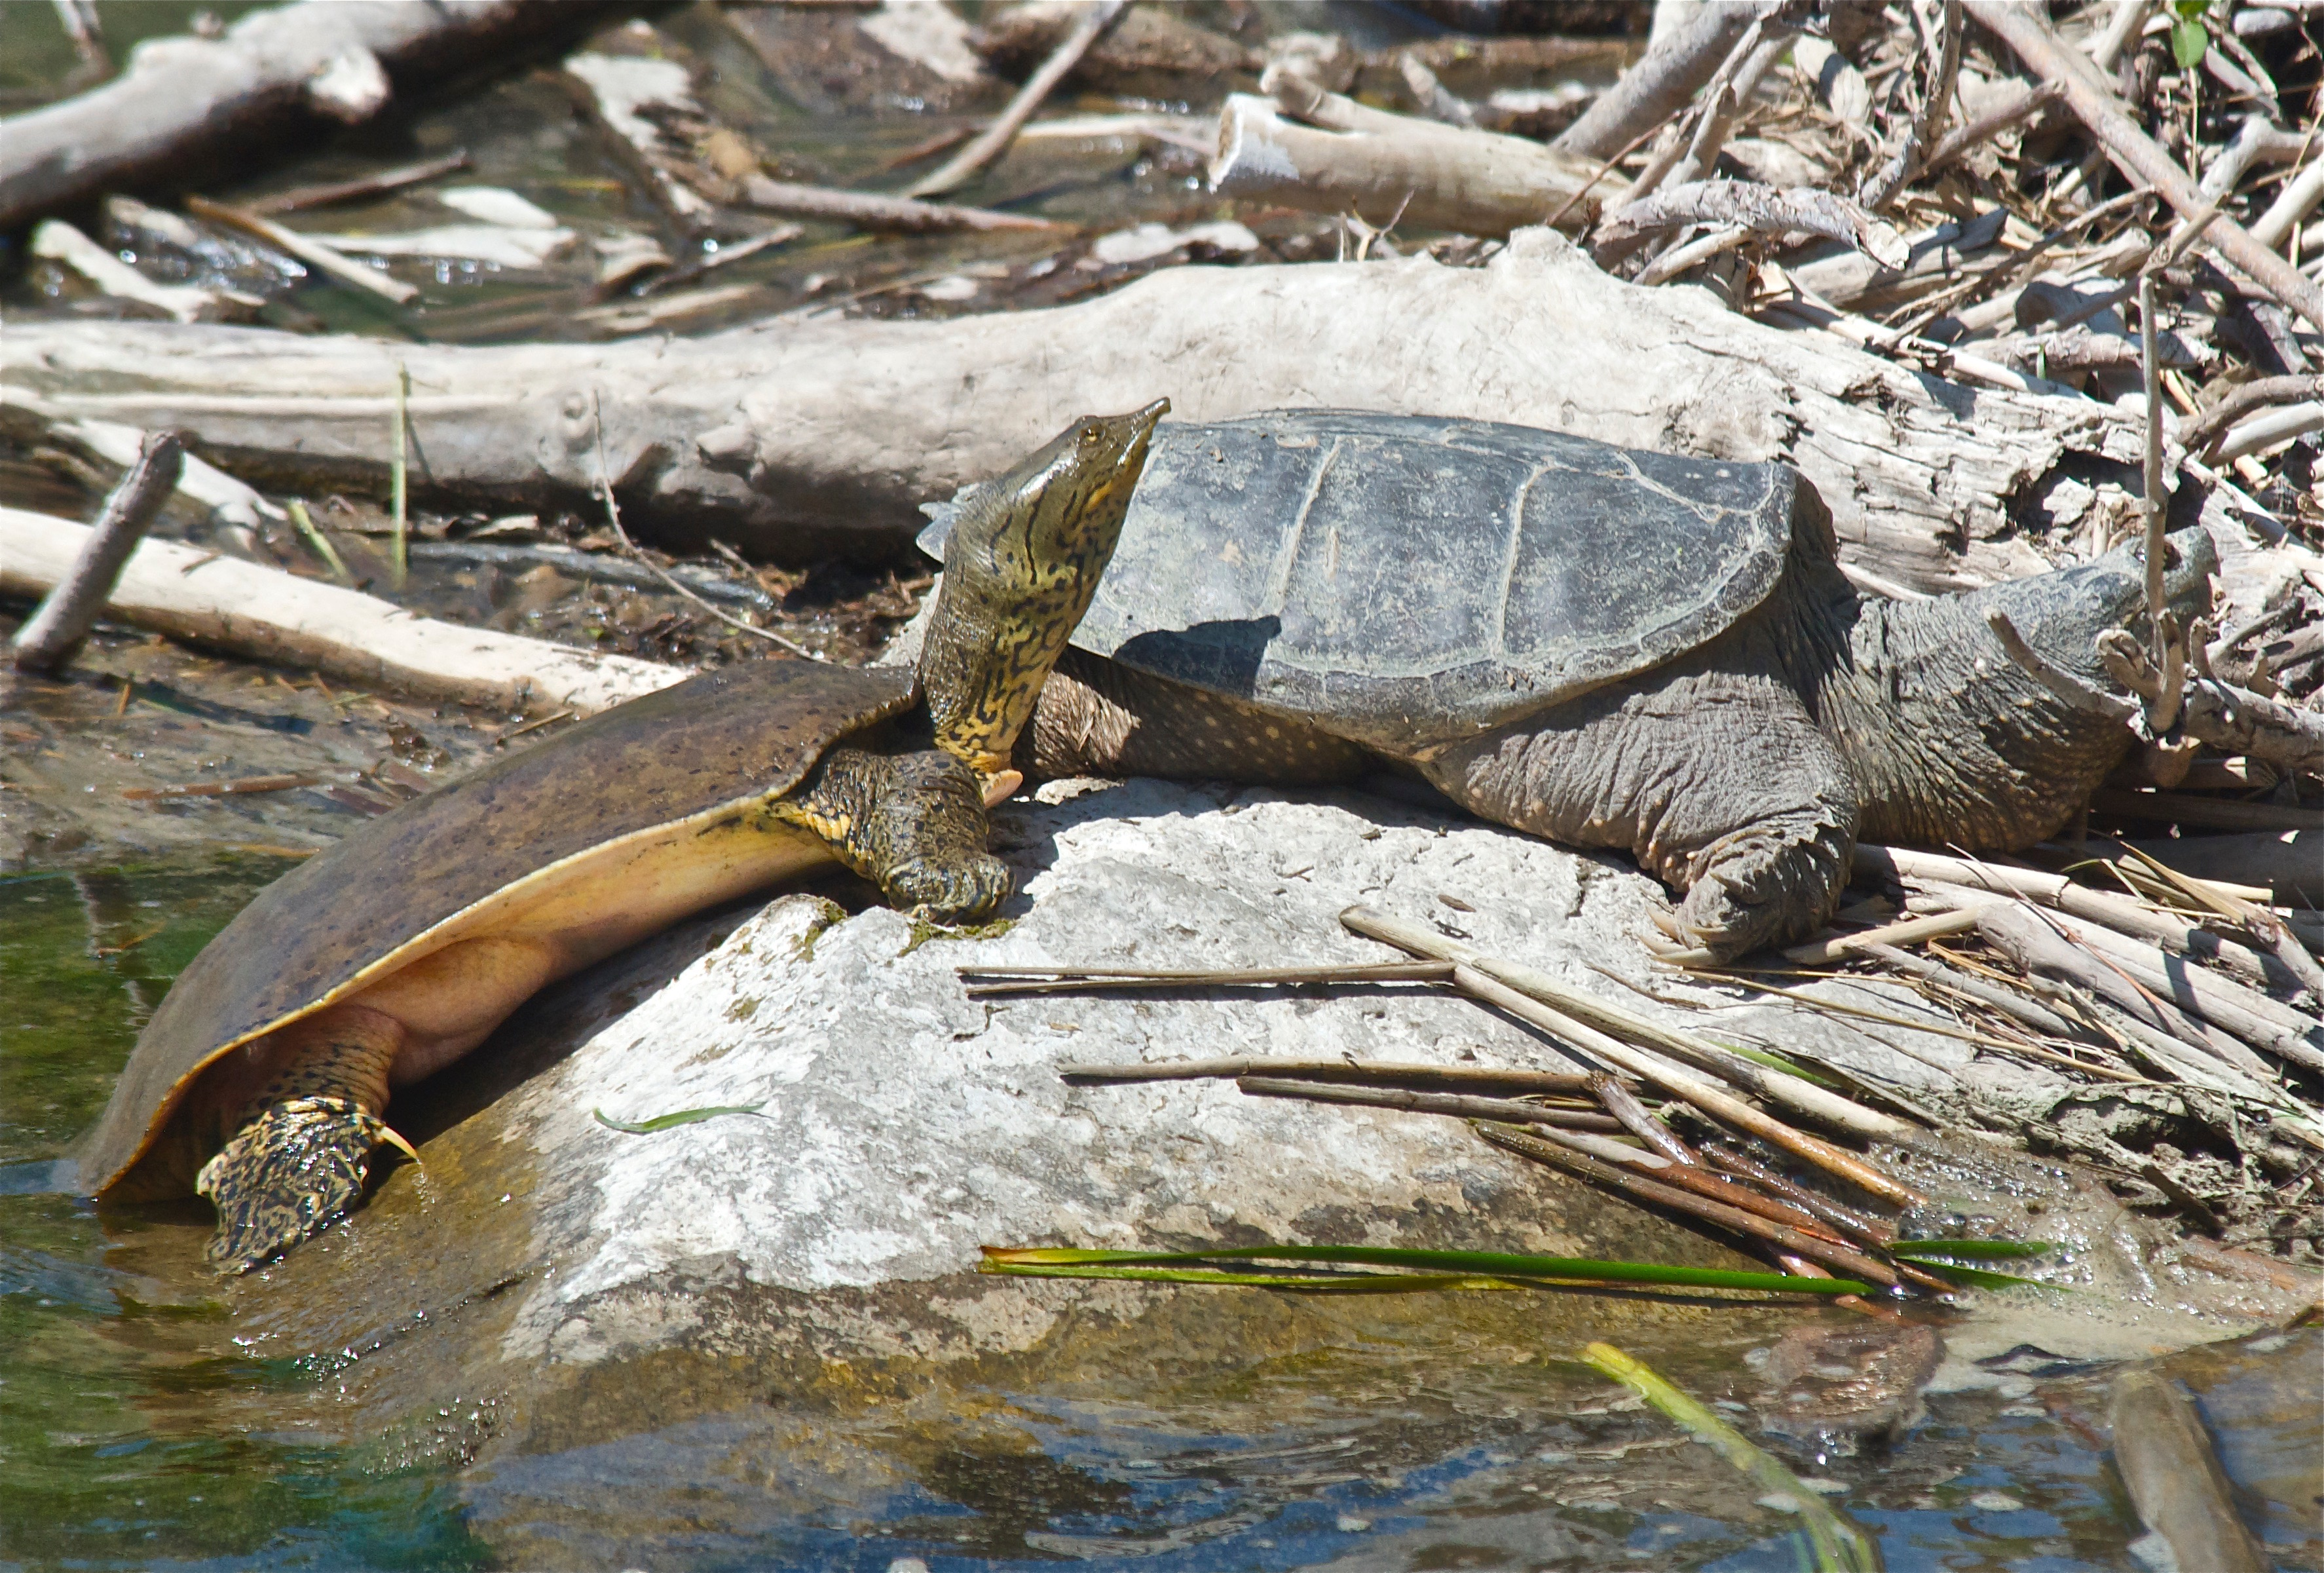 Spiny and Snapping Turtle